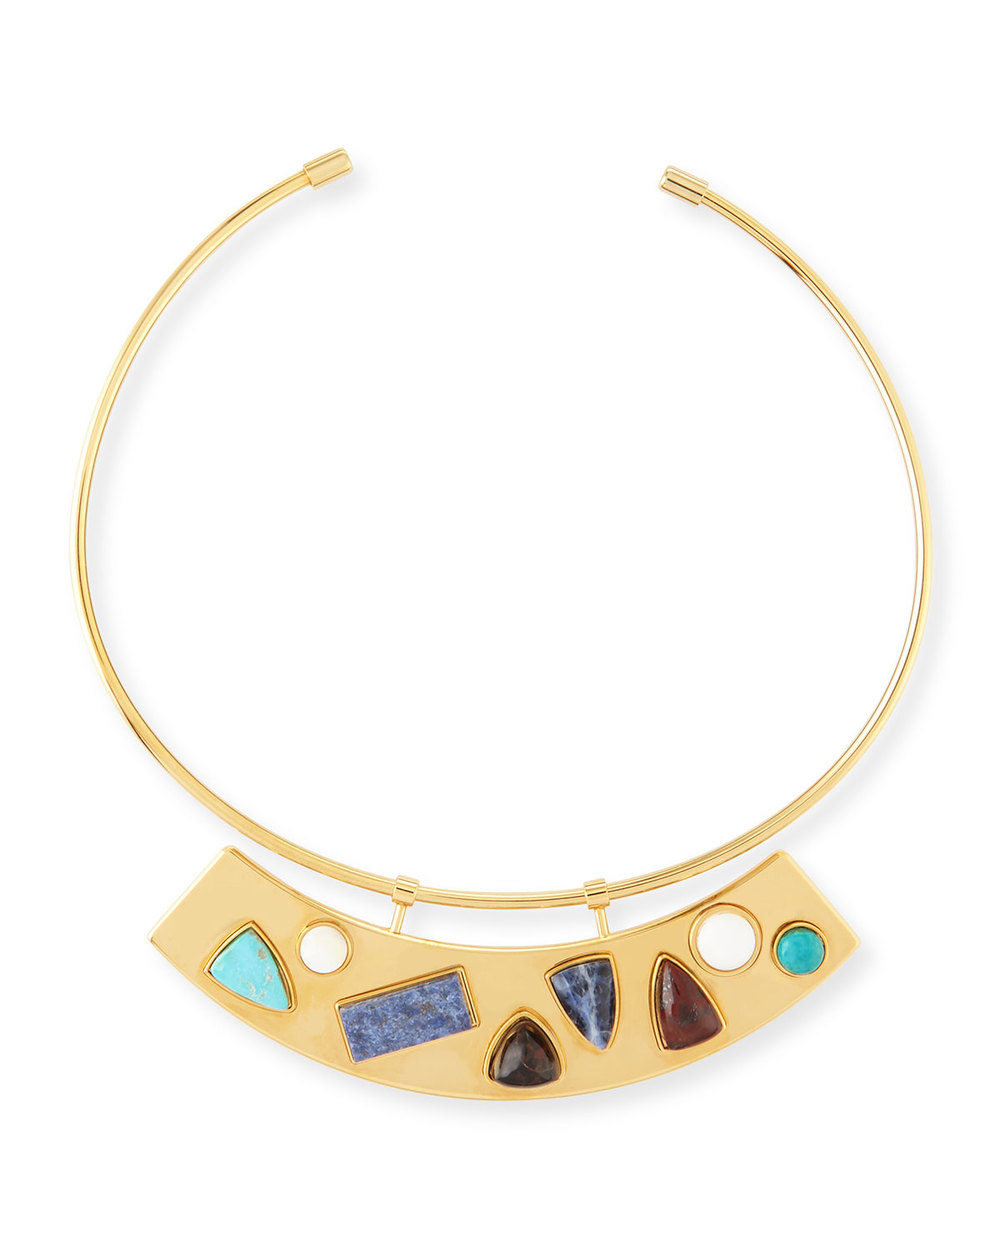 Lizzie Fortunato Bahia Palace Collar Necklace • $156 • Neiman Marcus